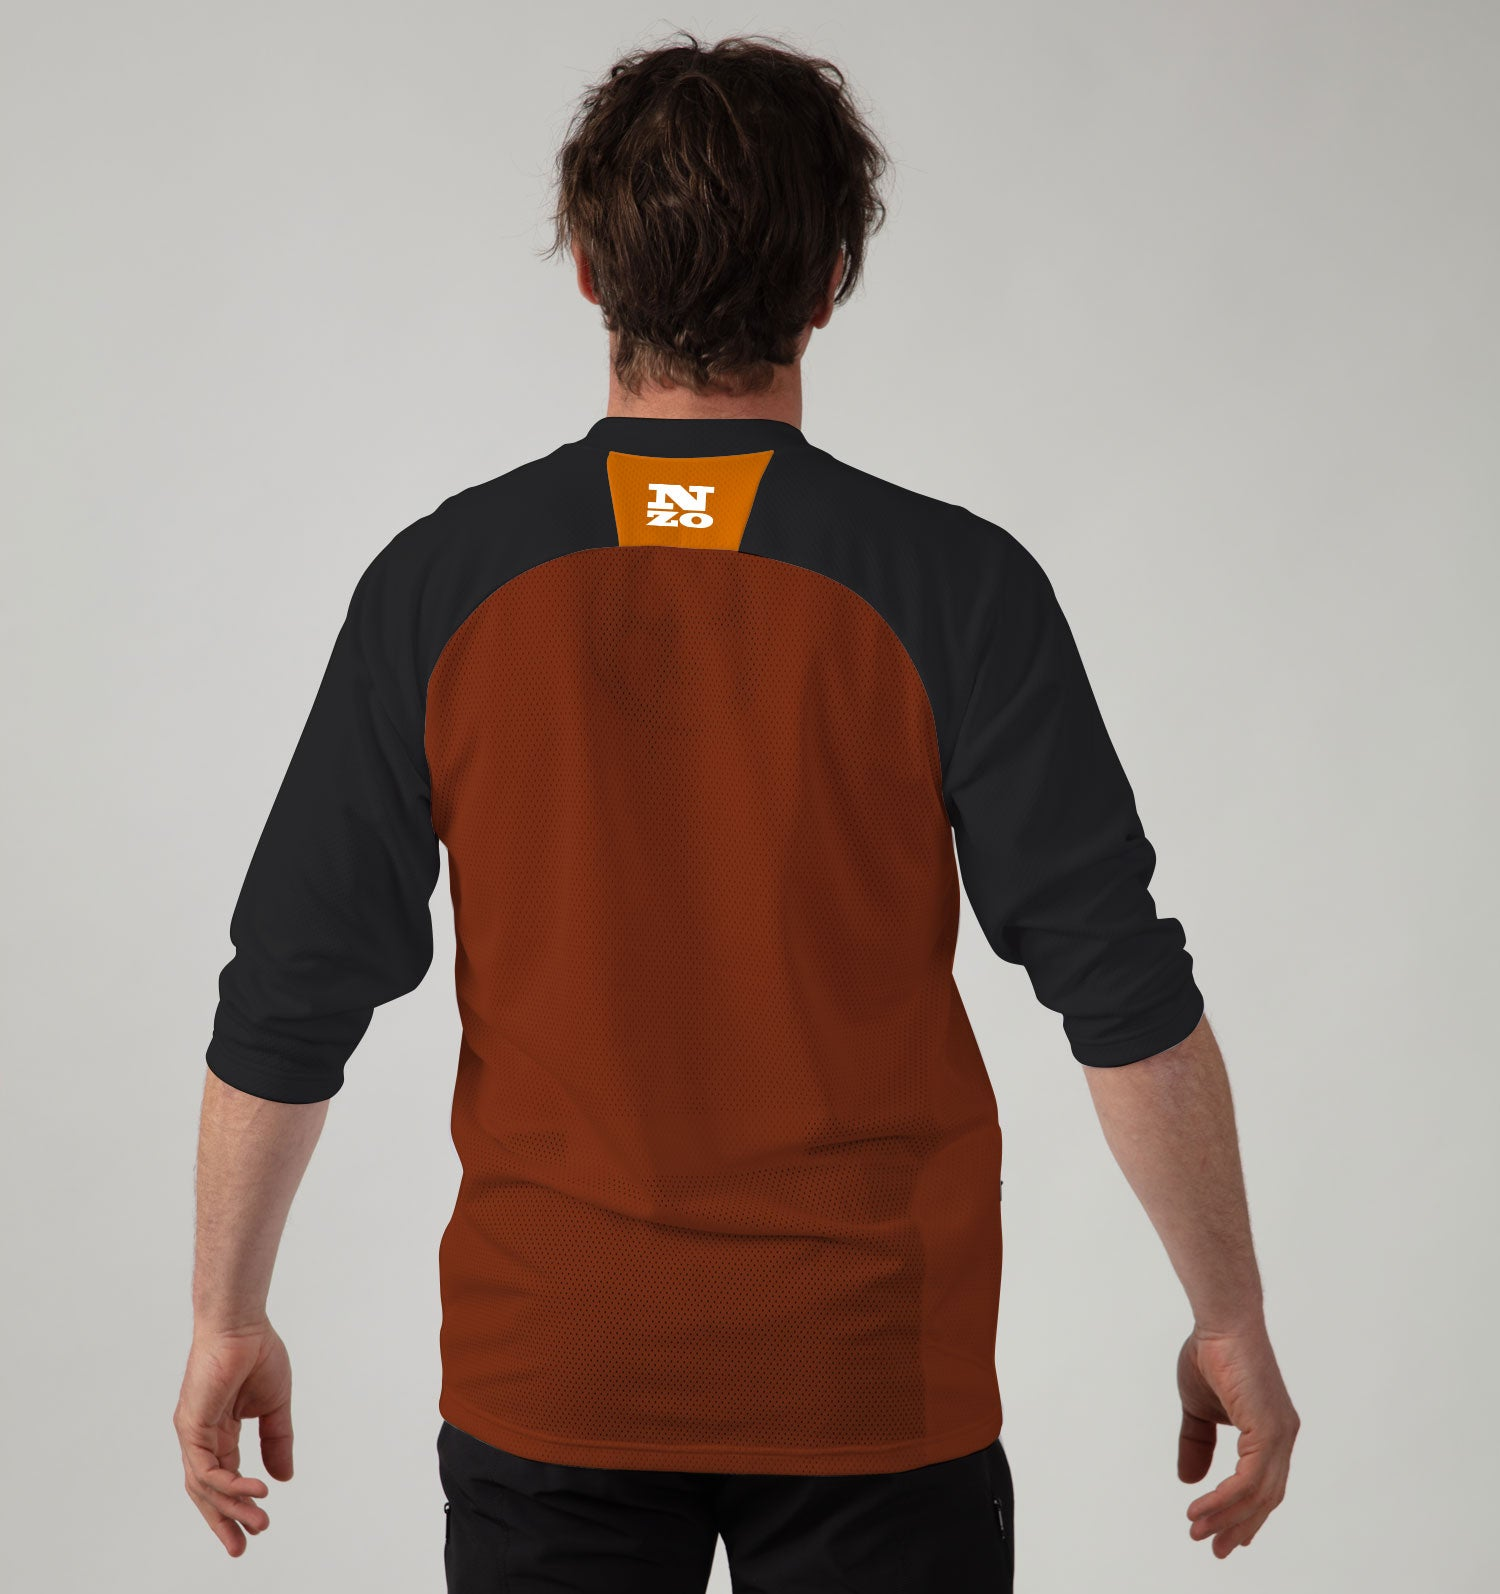 3/4 Sleeve MTB Top  - Nzo DESIGN 033-3